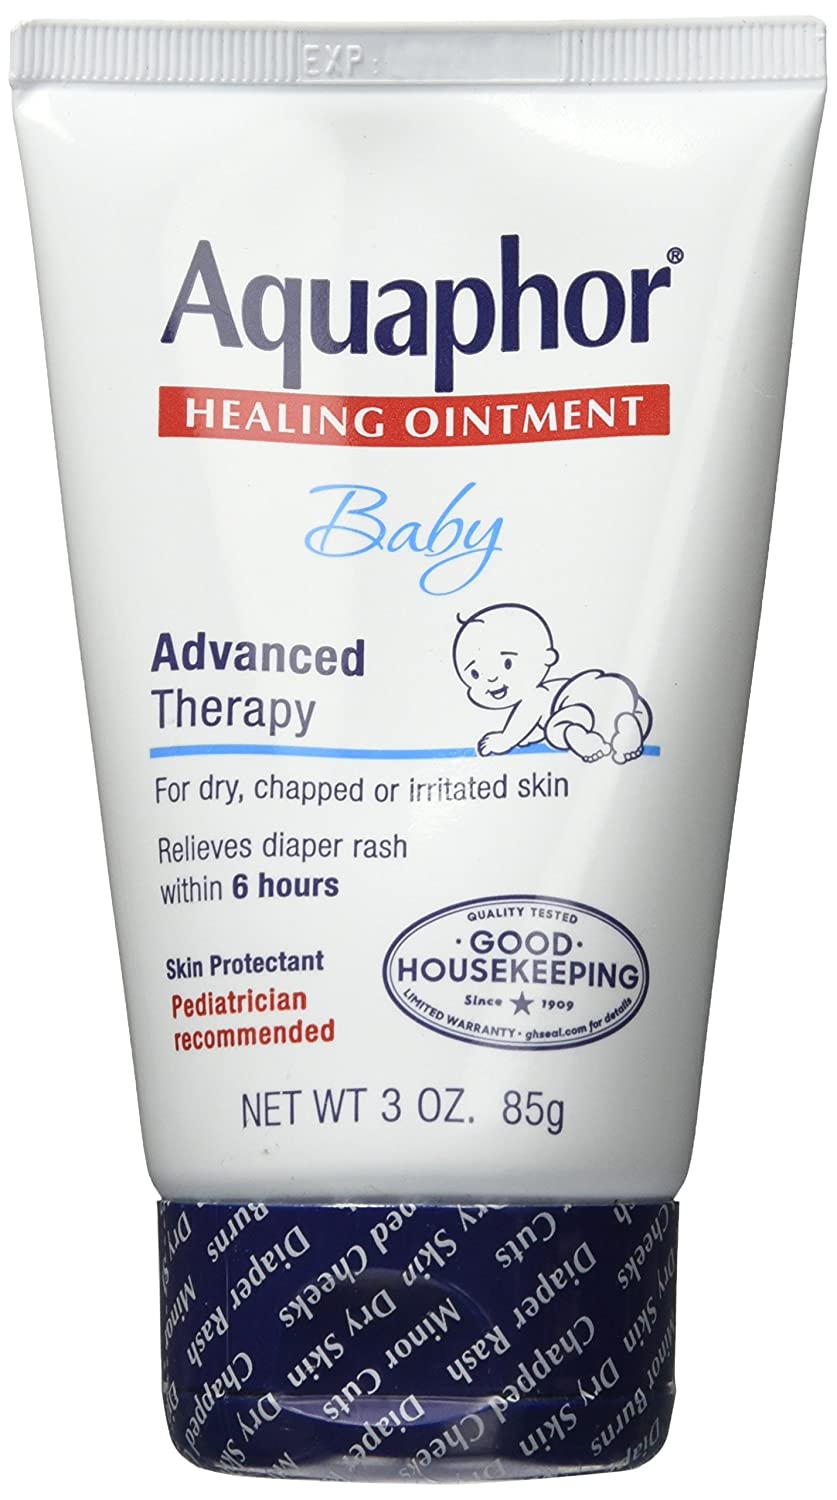 Aquaphor Healing Ointment Baby 3 Ounce Tube (89ml) (2 Pack)